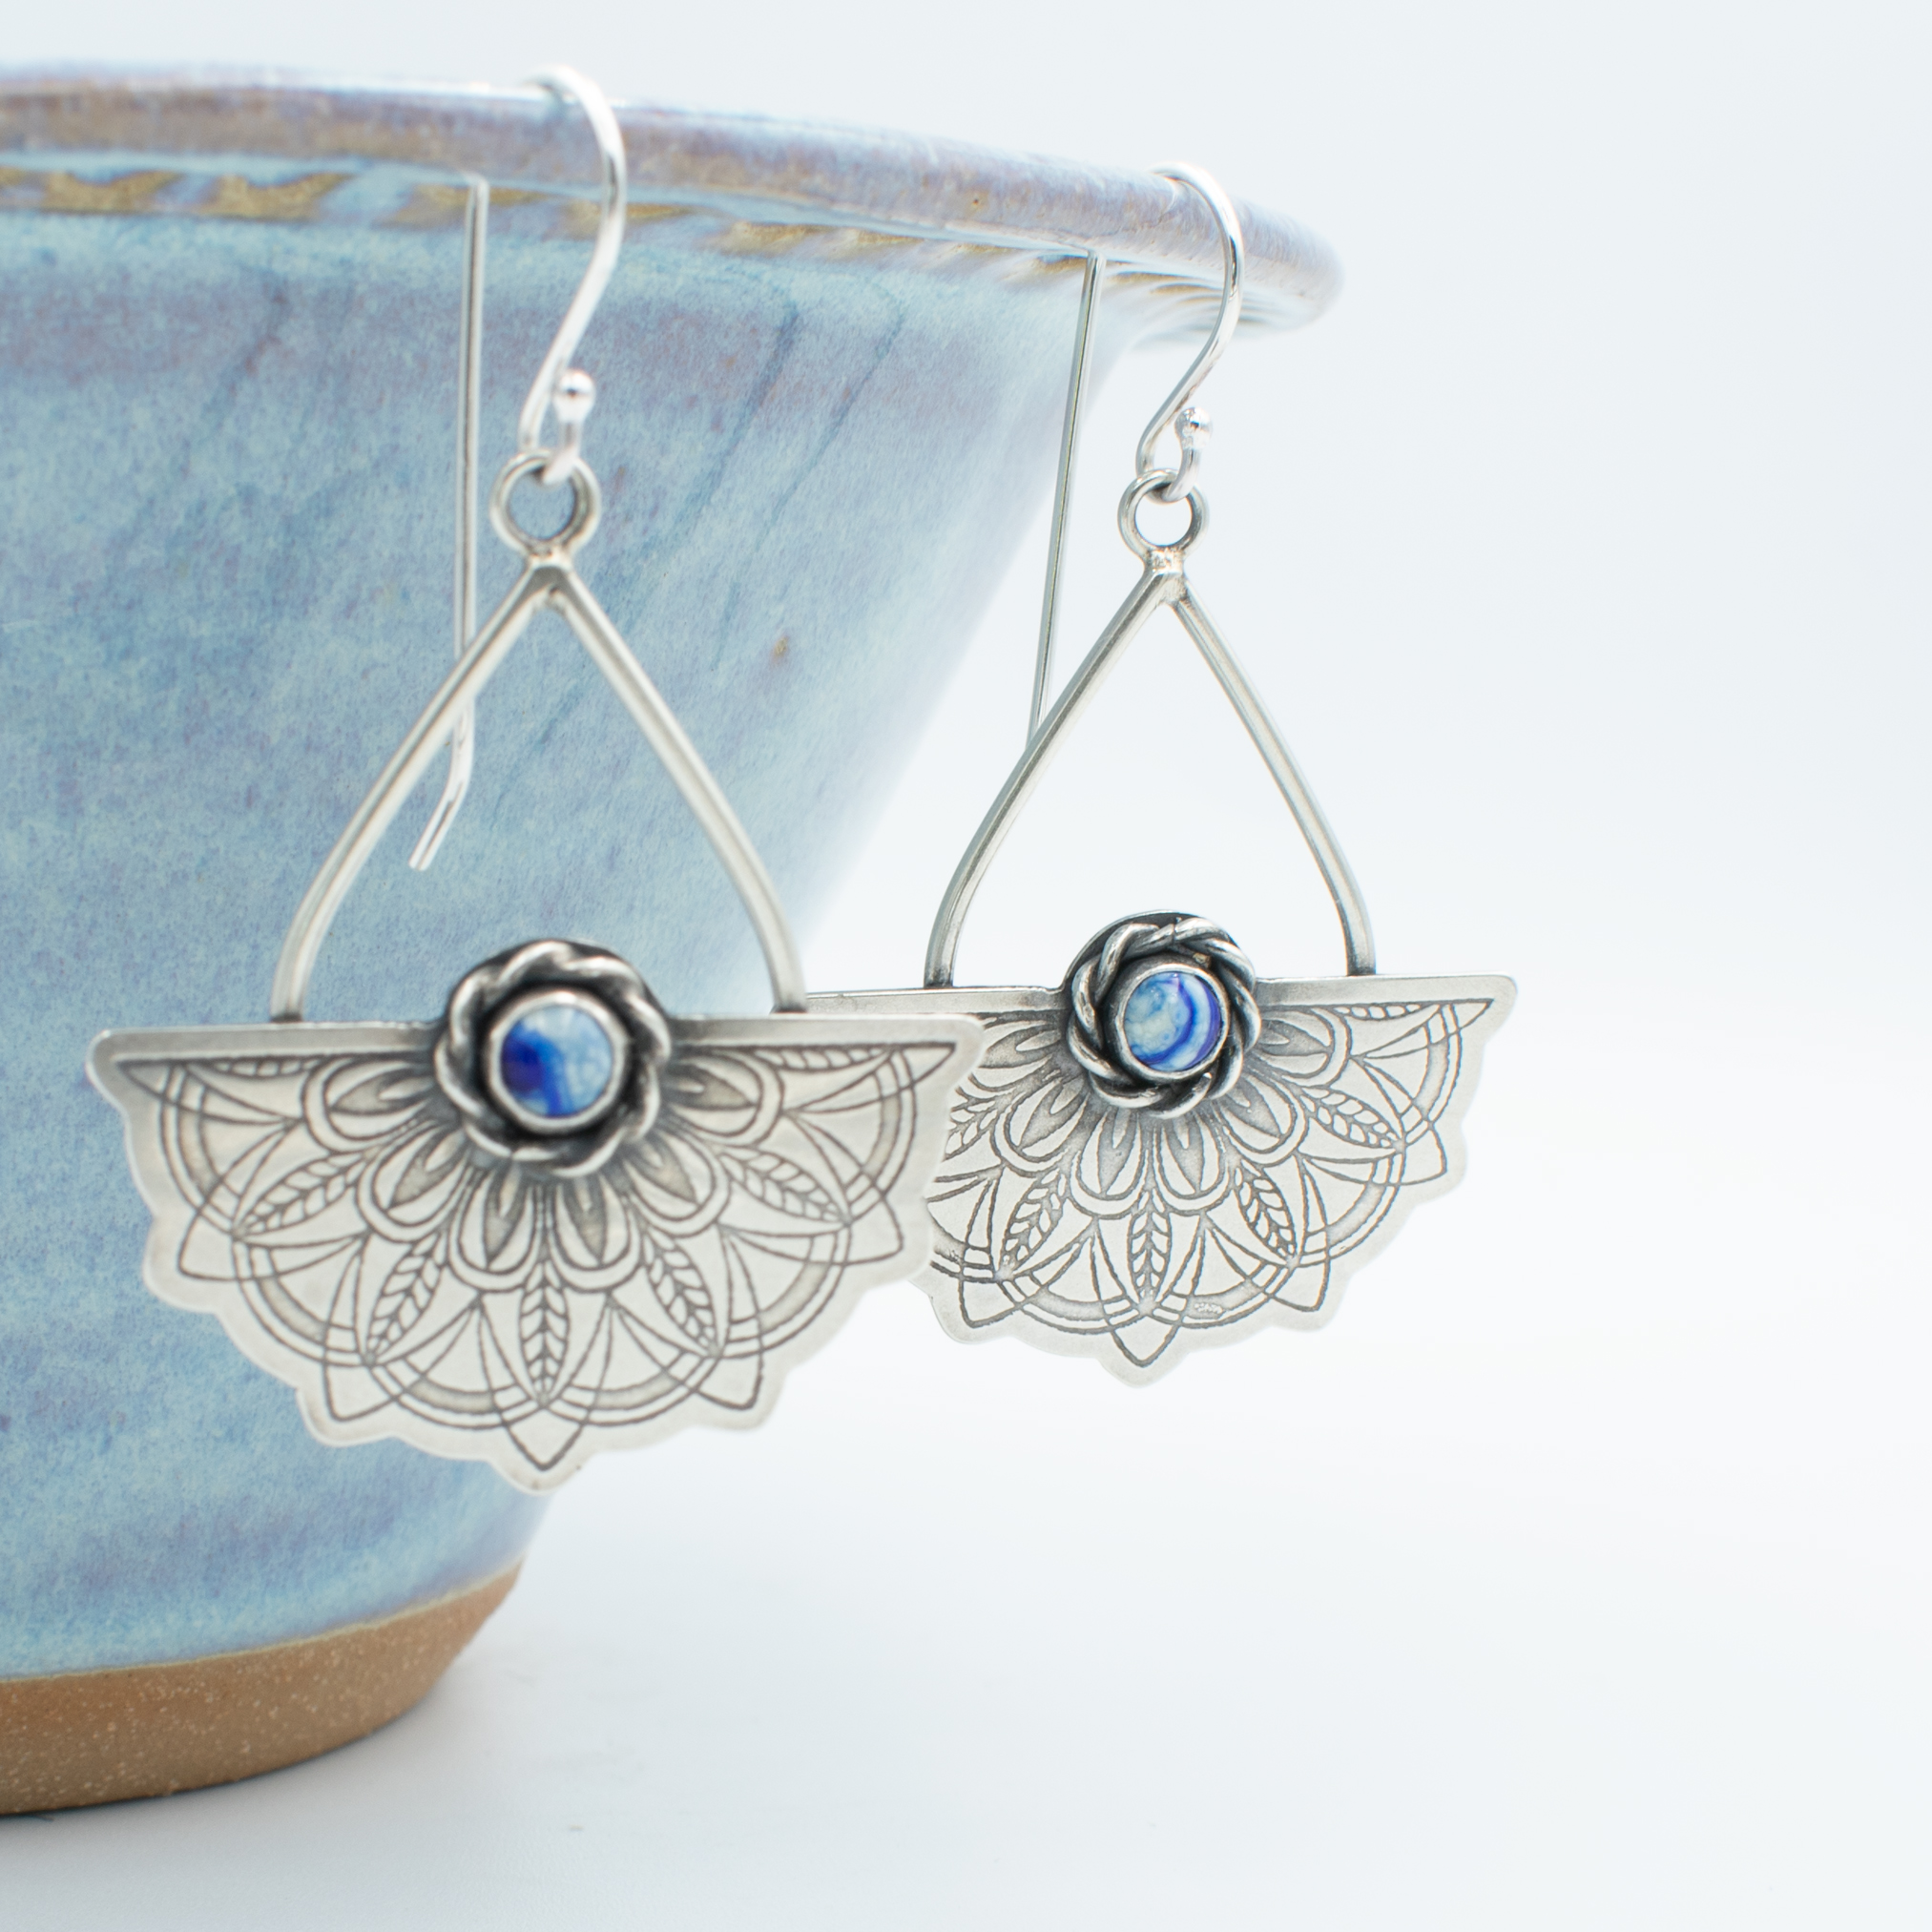 Dutch Delft Blue glass and silver earrings